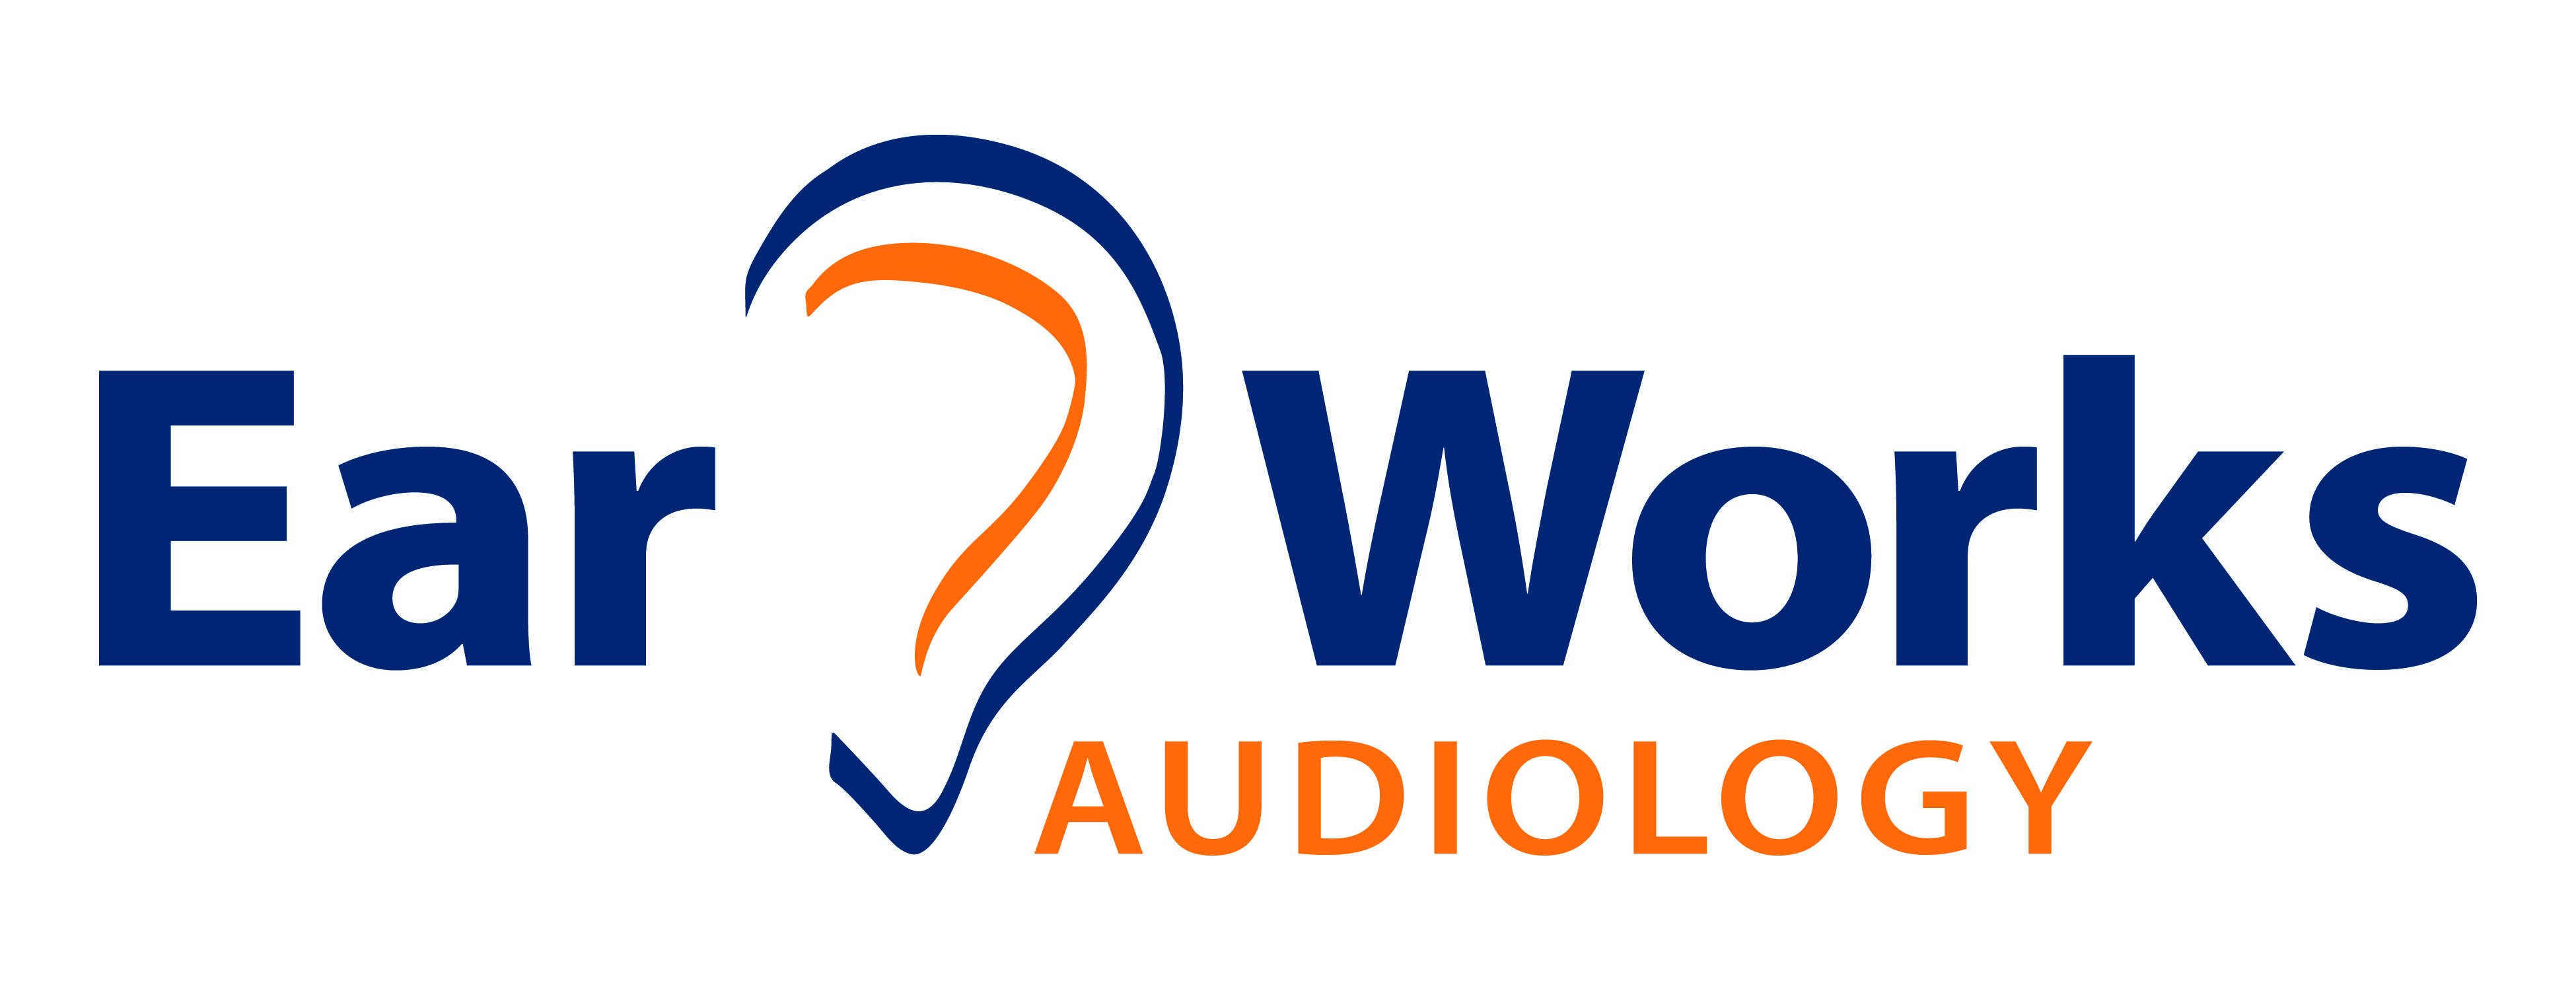 A. Ear Works Audiology, PC  (Gold)